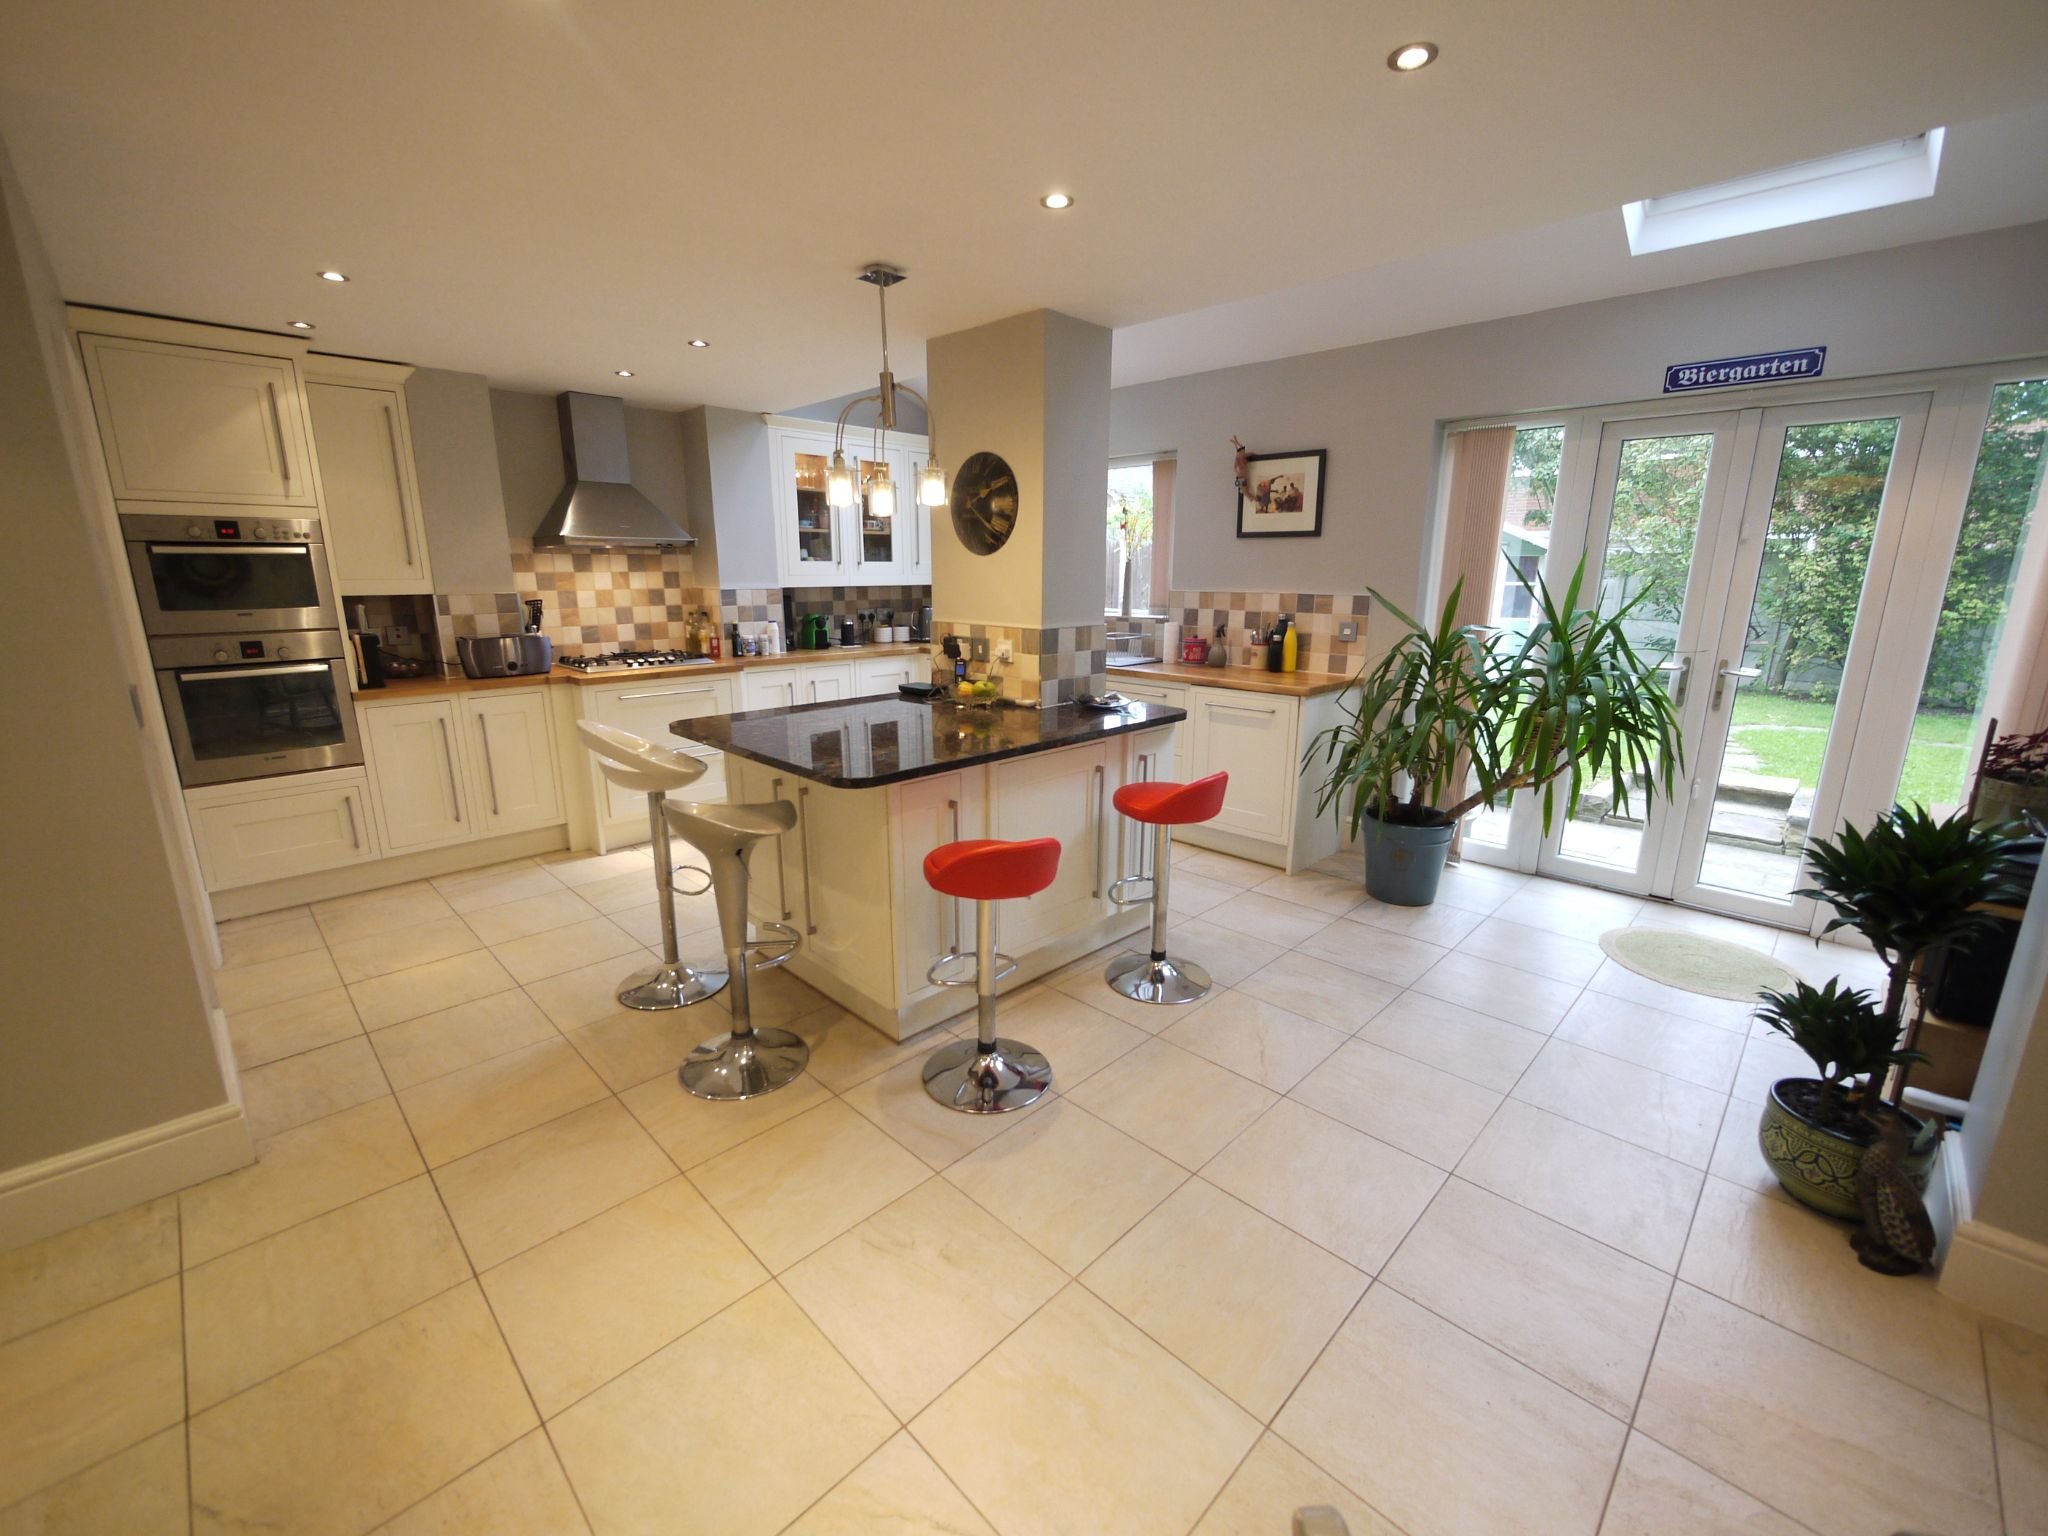 6 bedroom detached house SSTC in Halifax - dining kit 1.